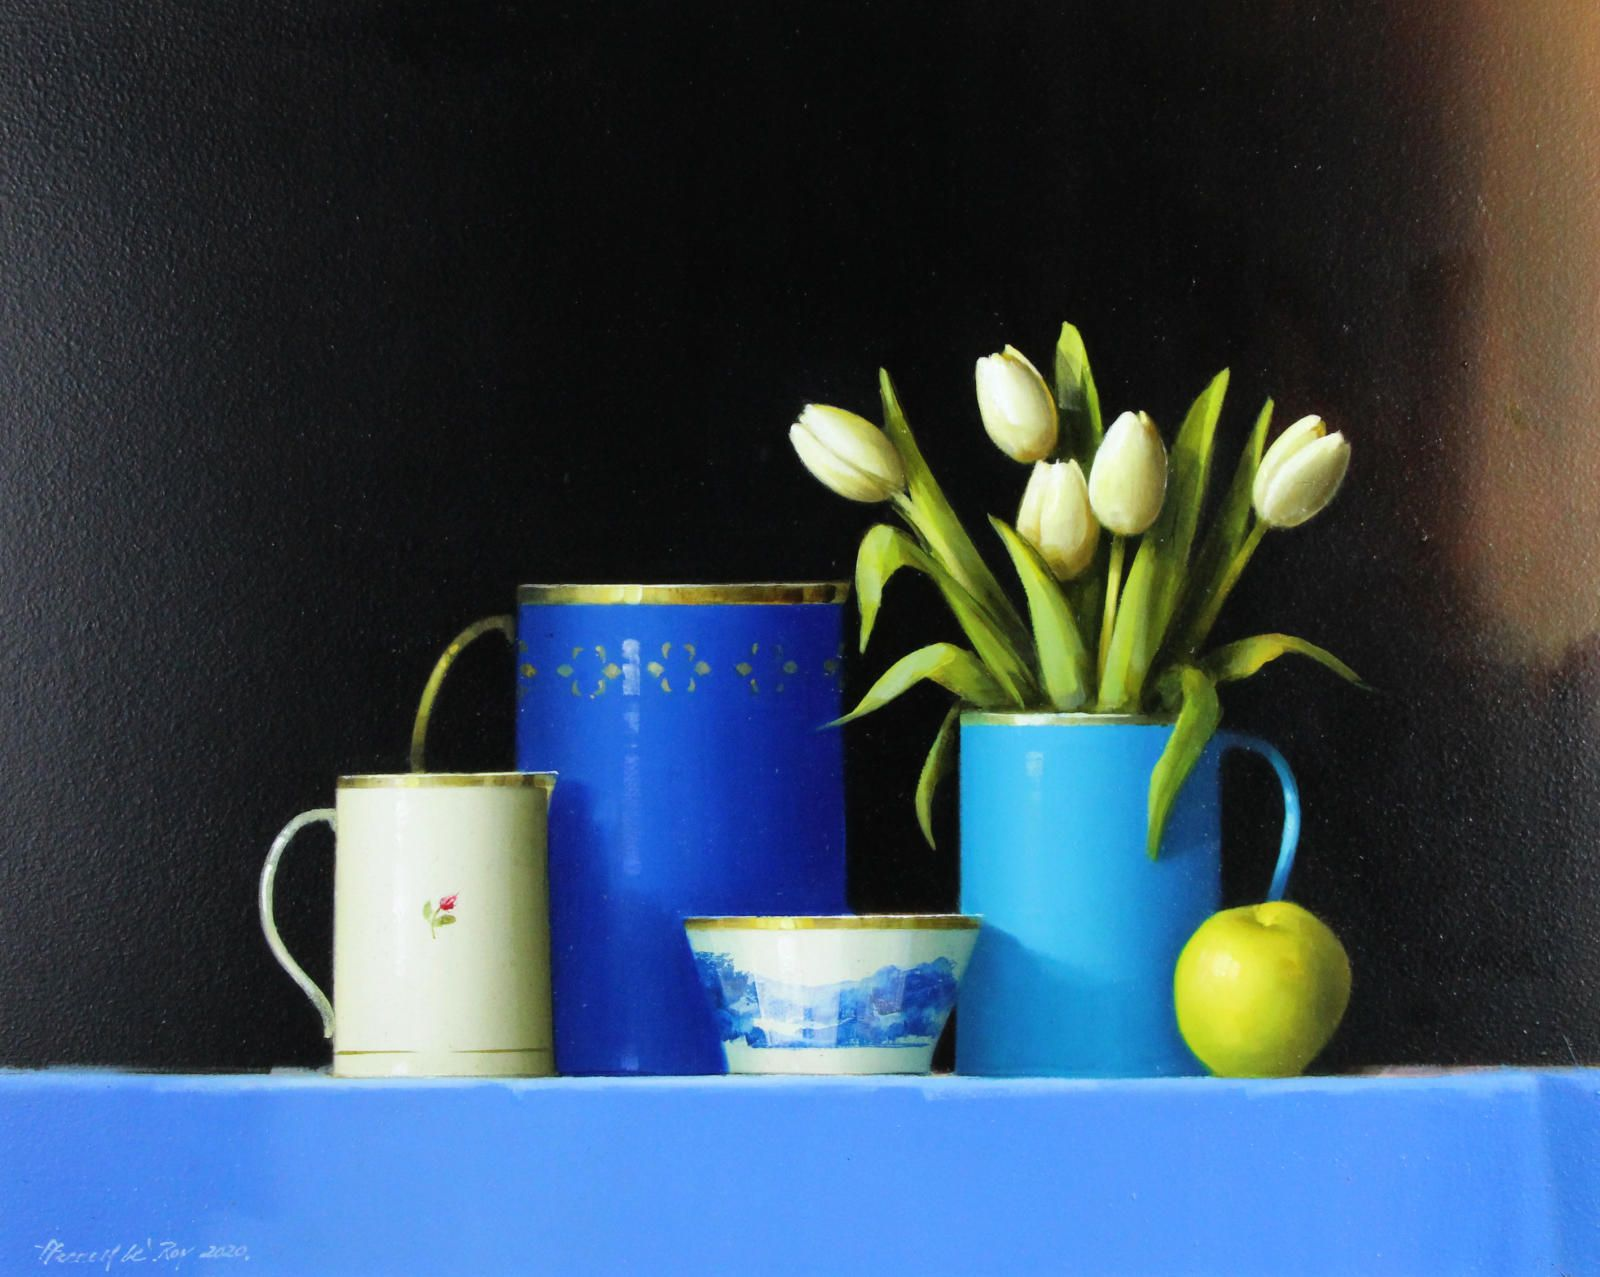 Turquoise Jug and Tulips